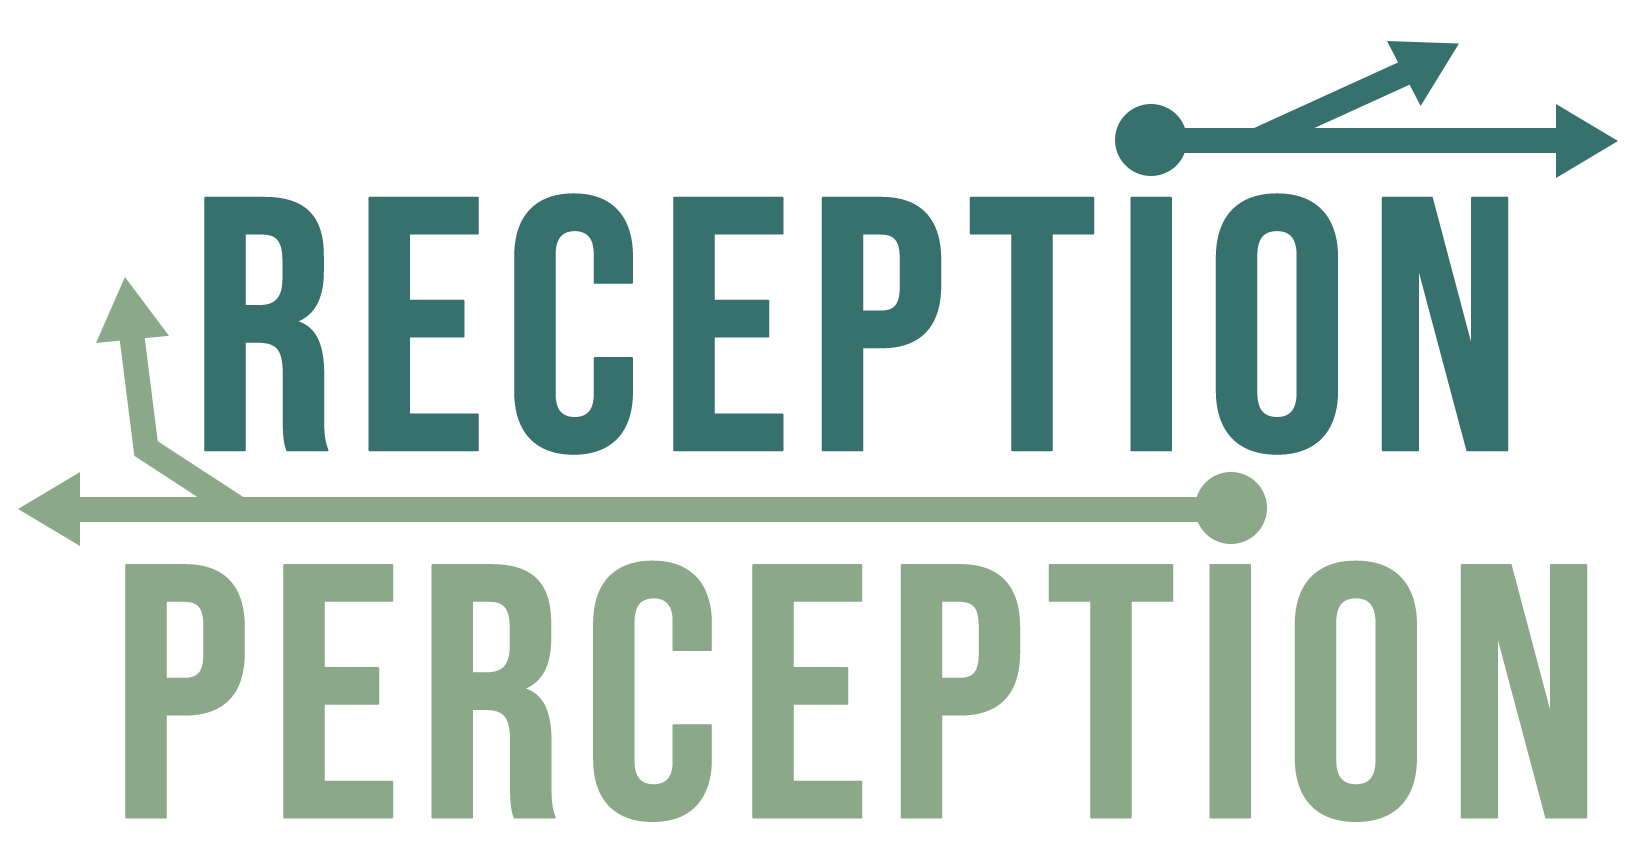 Reception Perception